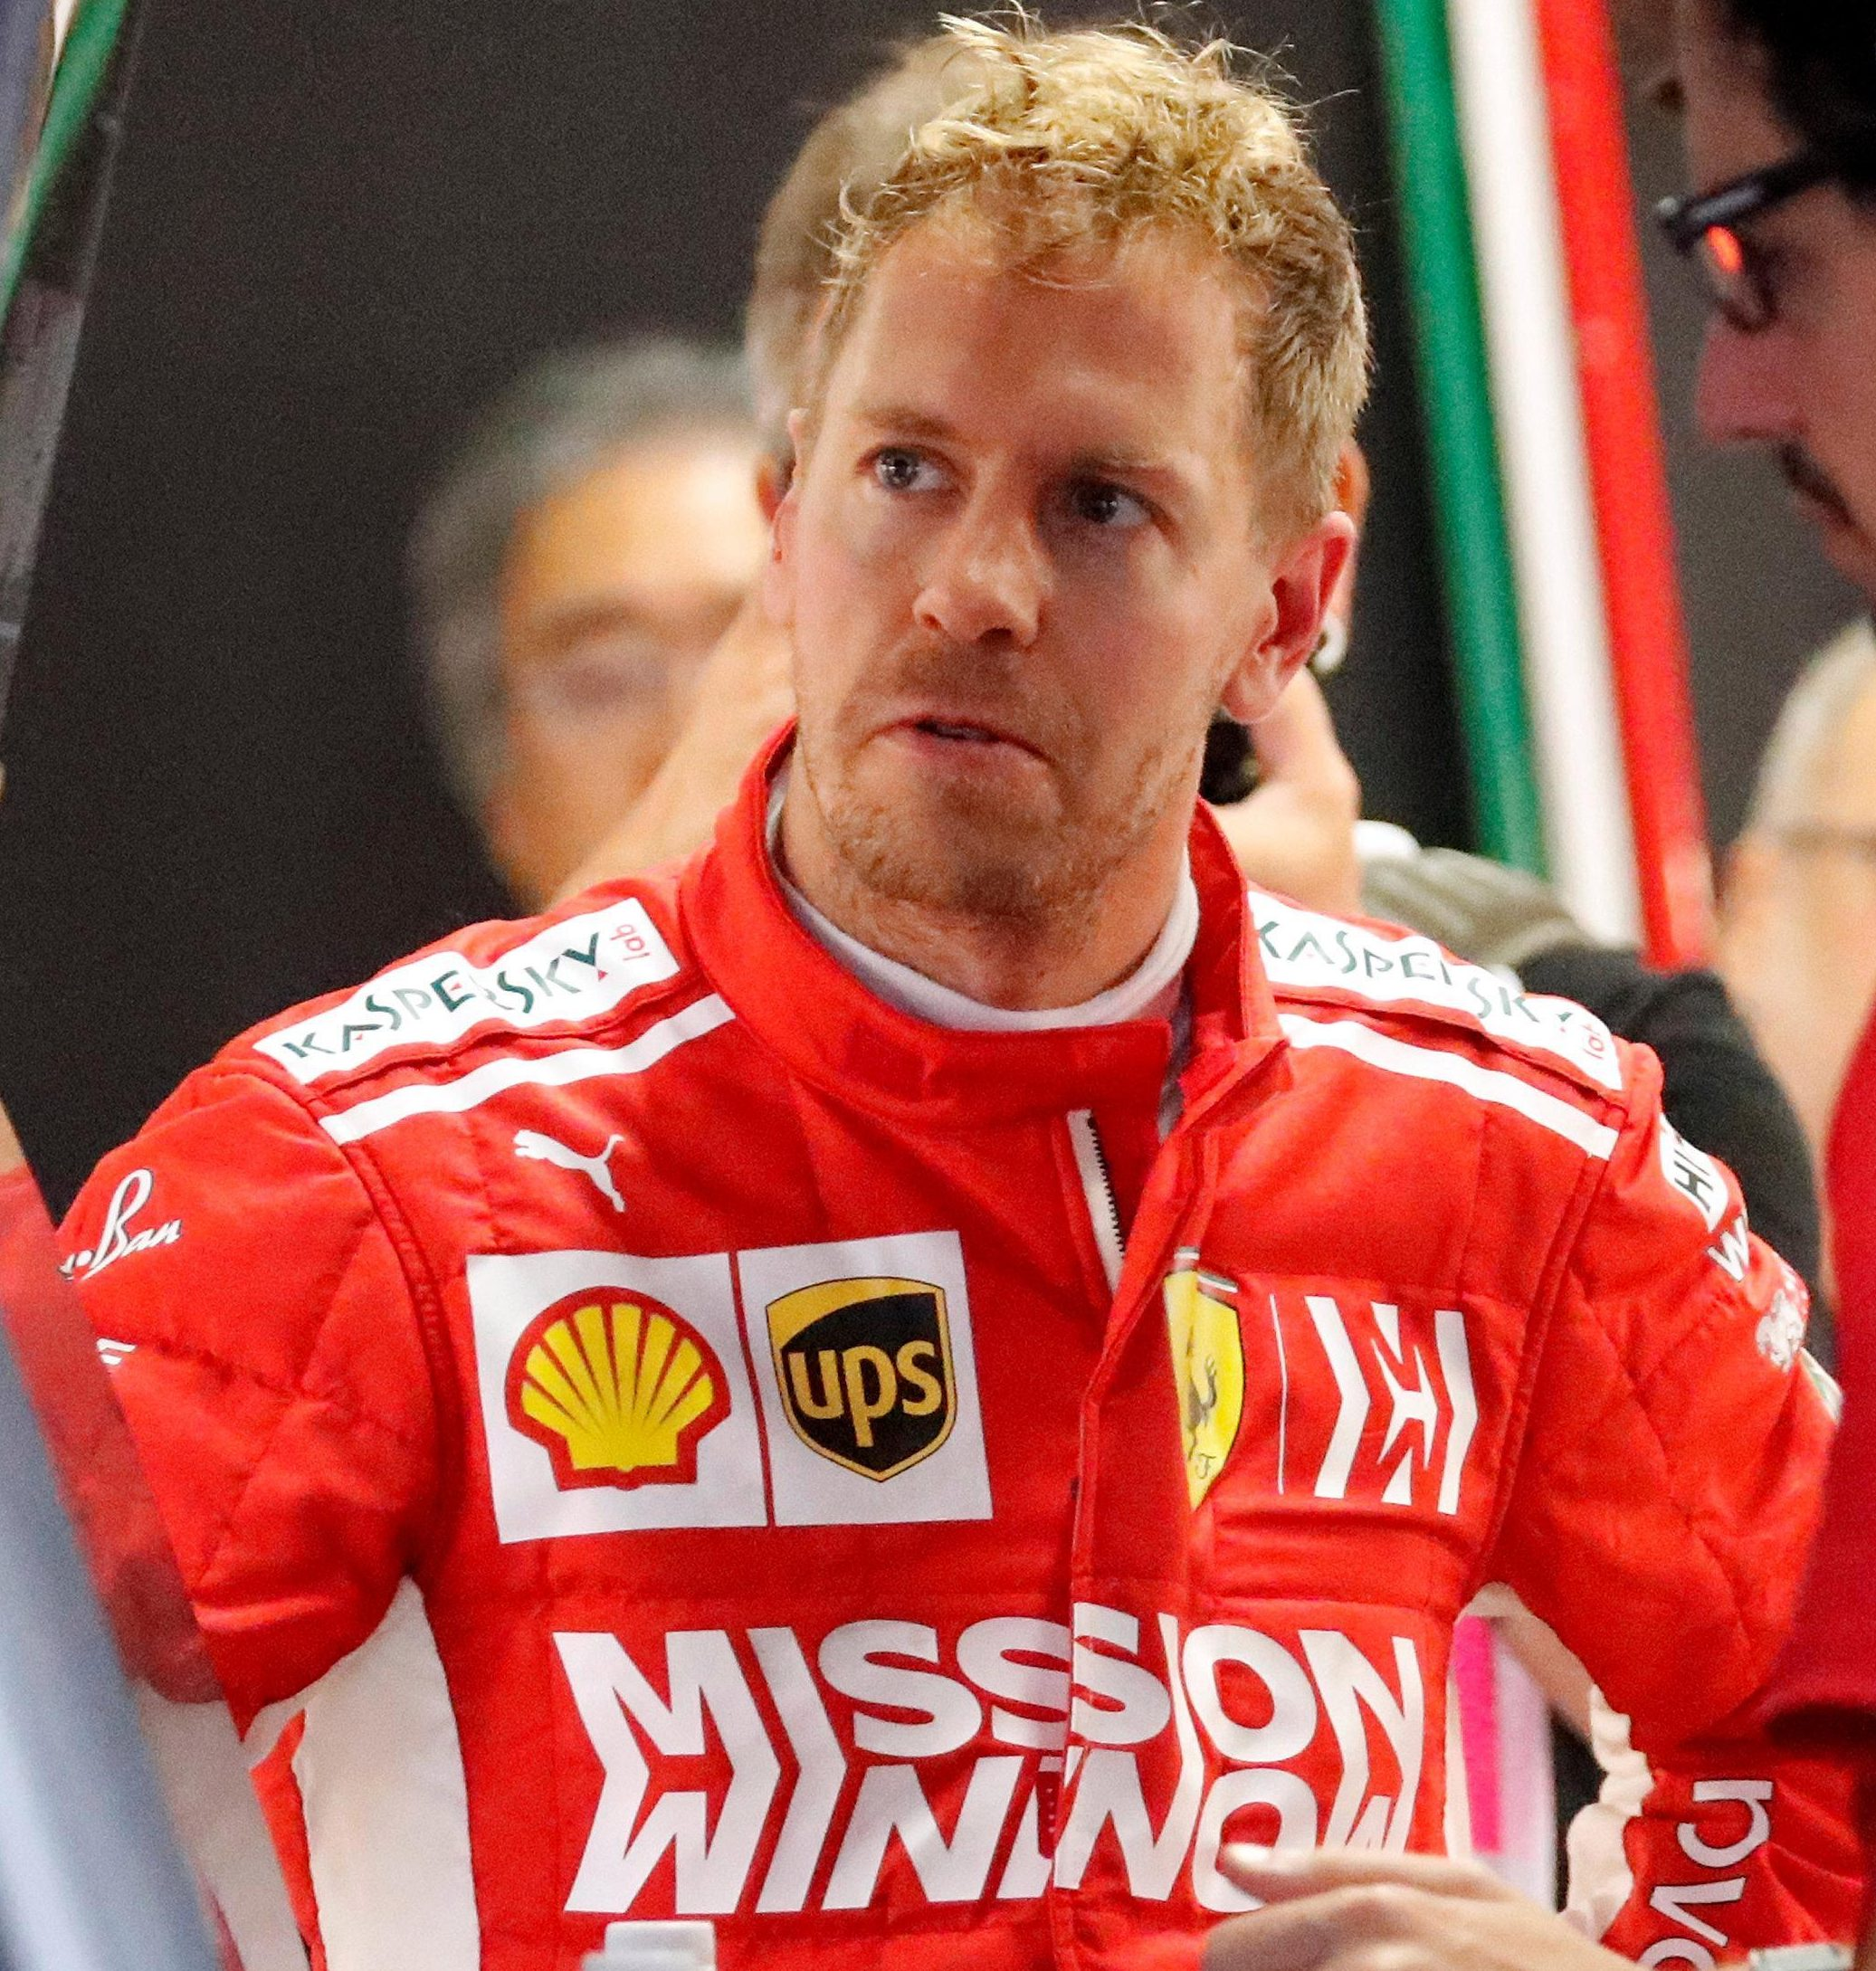 Sebastian Vettel has been slammed by ex-champ Jacques Villeneuve after big rival Lewis Hamilton took command of the F1 title race